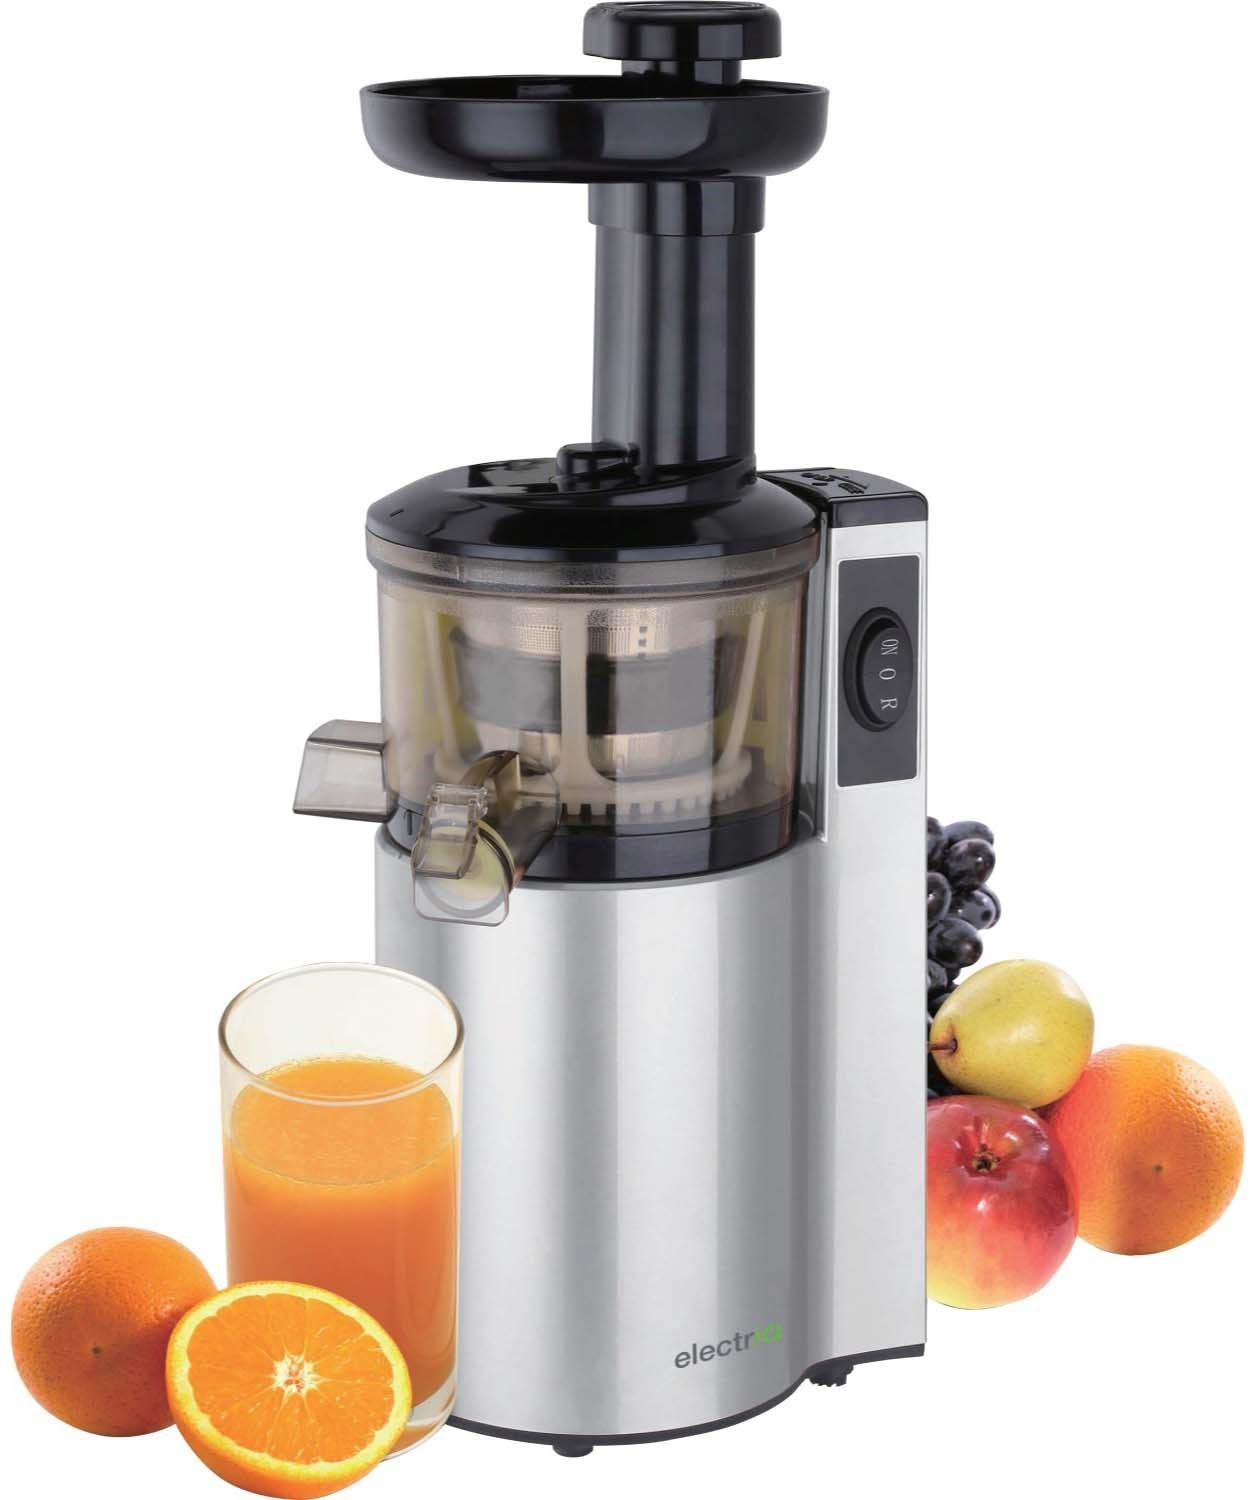 Slow Juicer And Smoothie Maker : GRADE A1 - ElectriQ Premium Cold Pressed vertical Slow ...